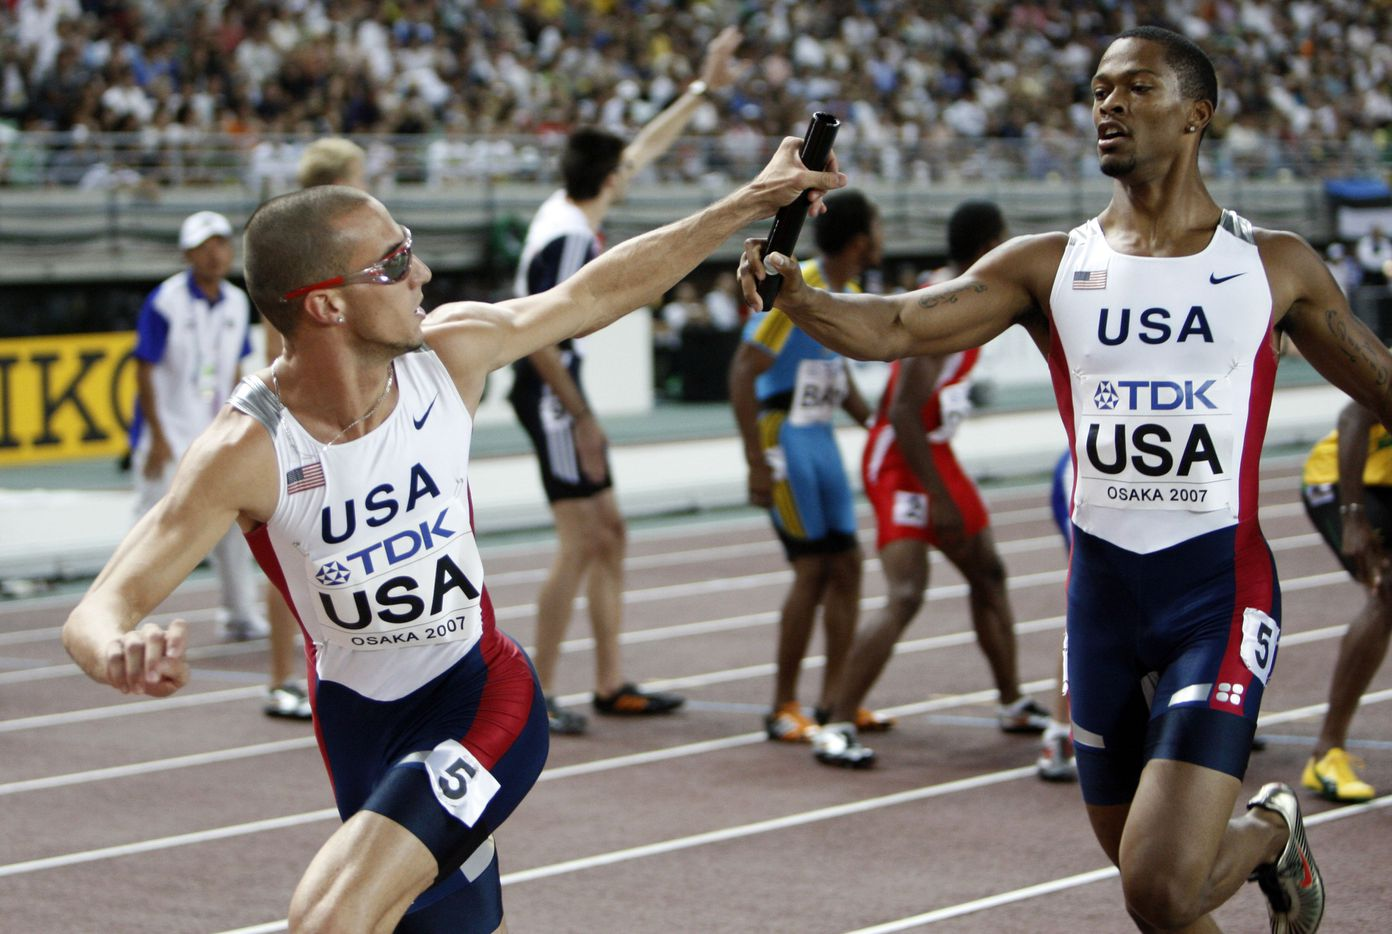 From 2007: United States' Jeremy Wariner, left, takes the baton from Darold Williamson as the US Men's 4x400m Relay wins the gold medal during the World Athletics Championships Sunday, Sept. 2, 2007, in Osaka, Japan.